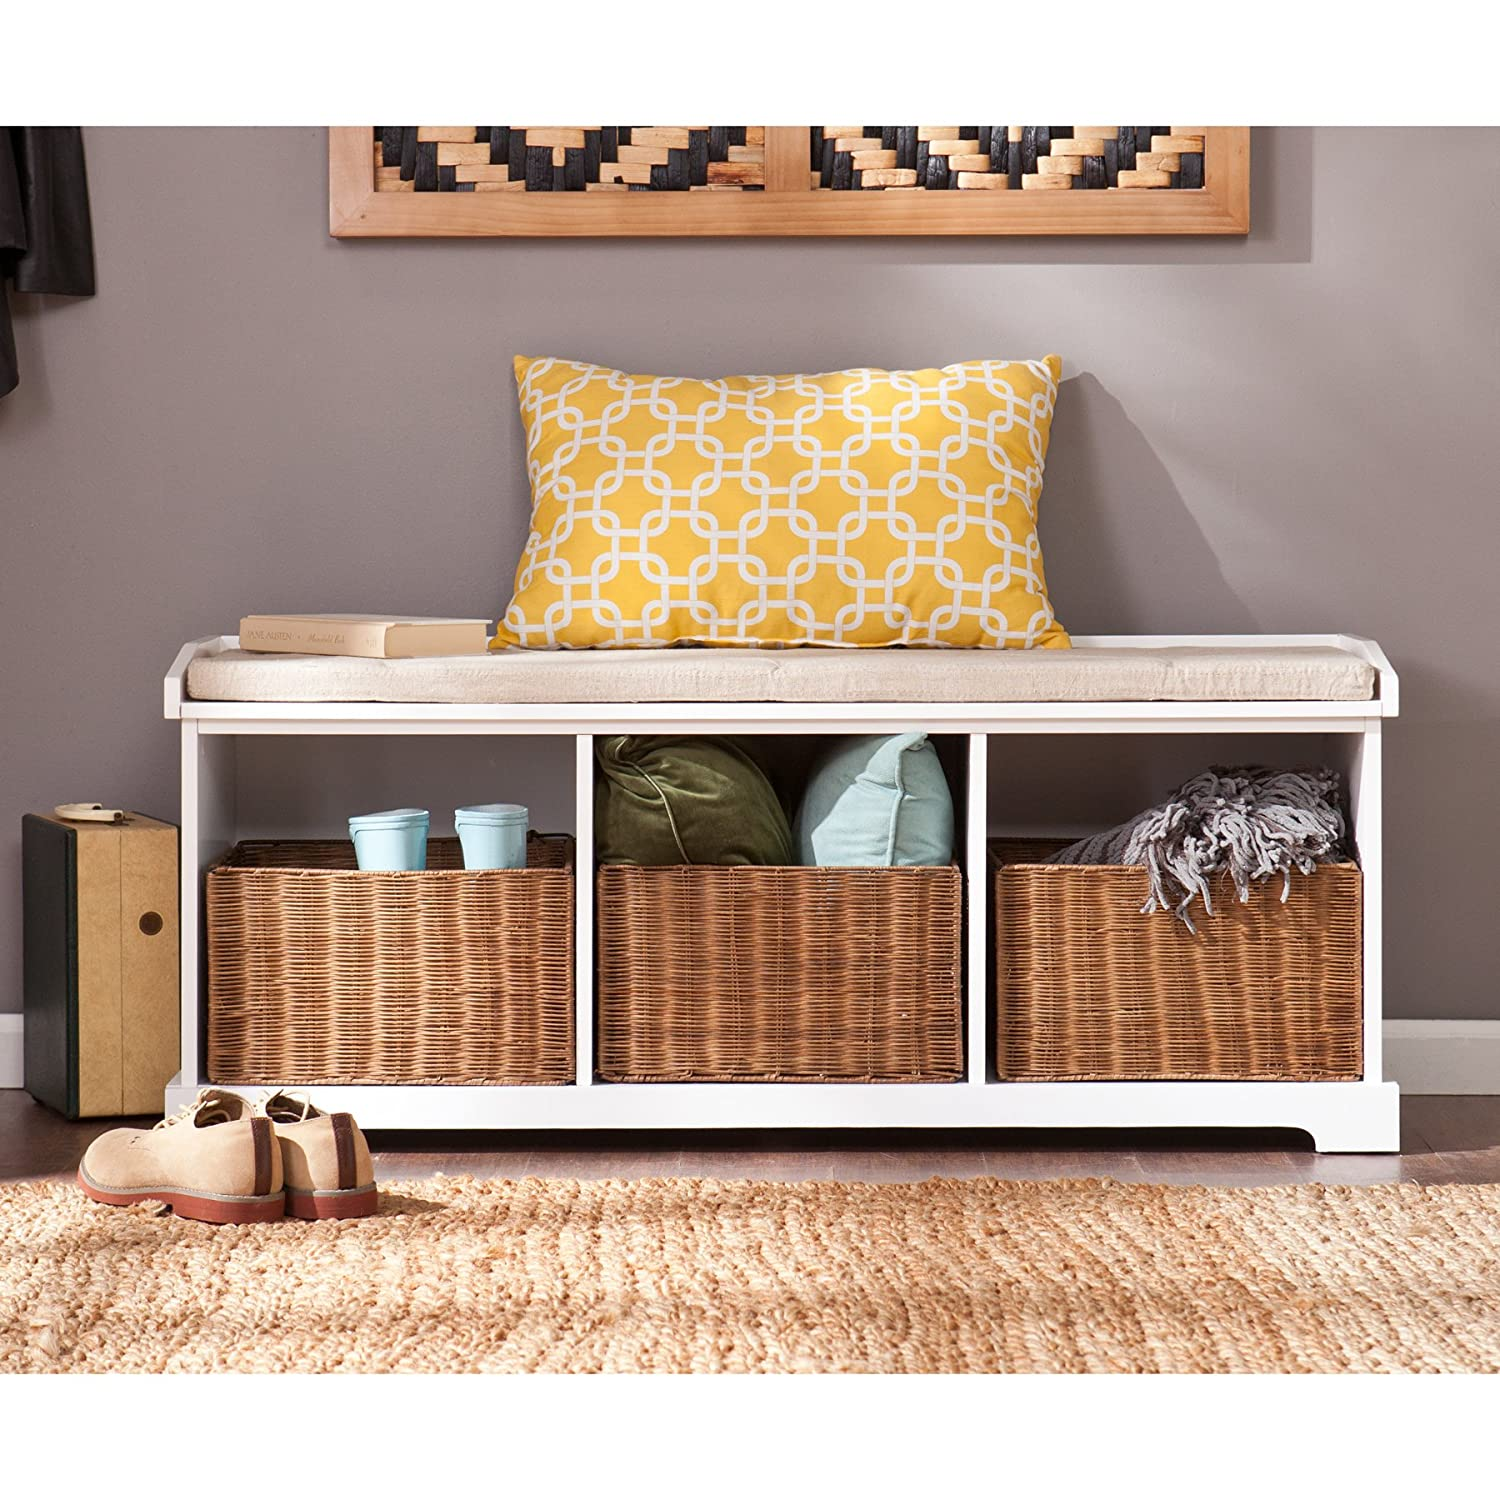 Design Entryway Bench amazon com southern enterprises loring entryway storage bench in white kitchen dining